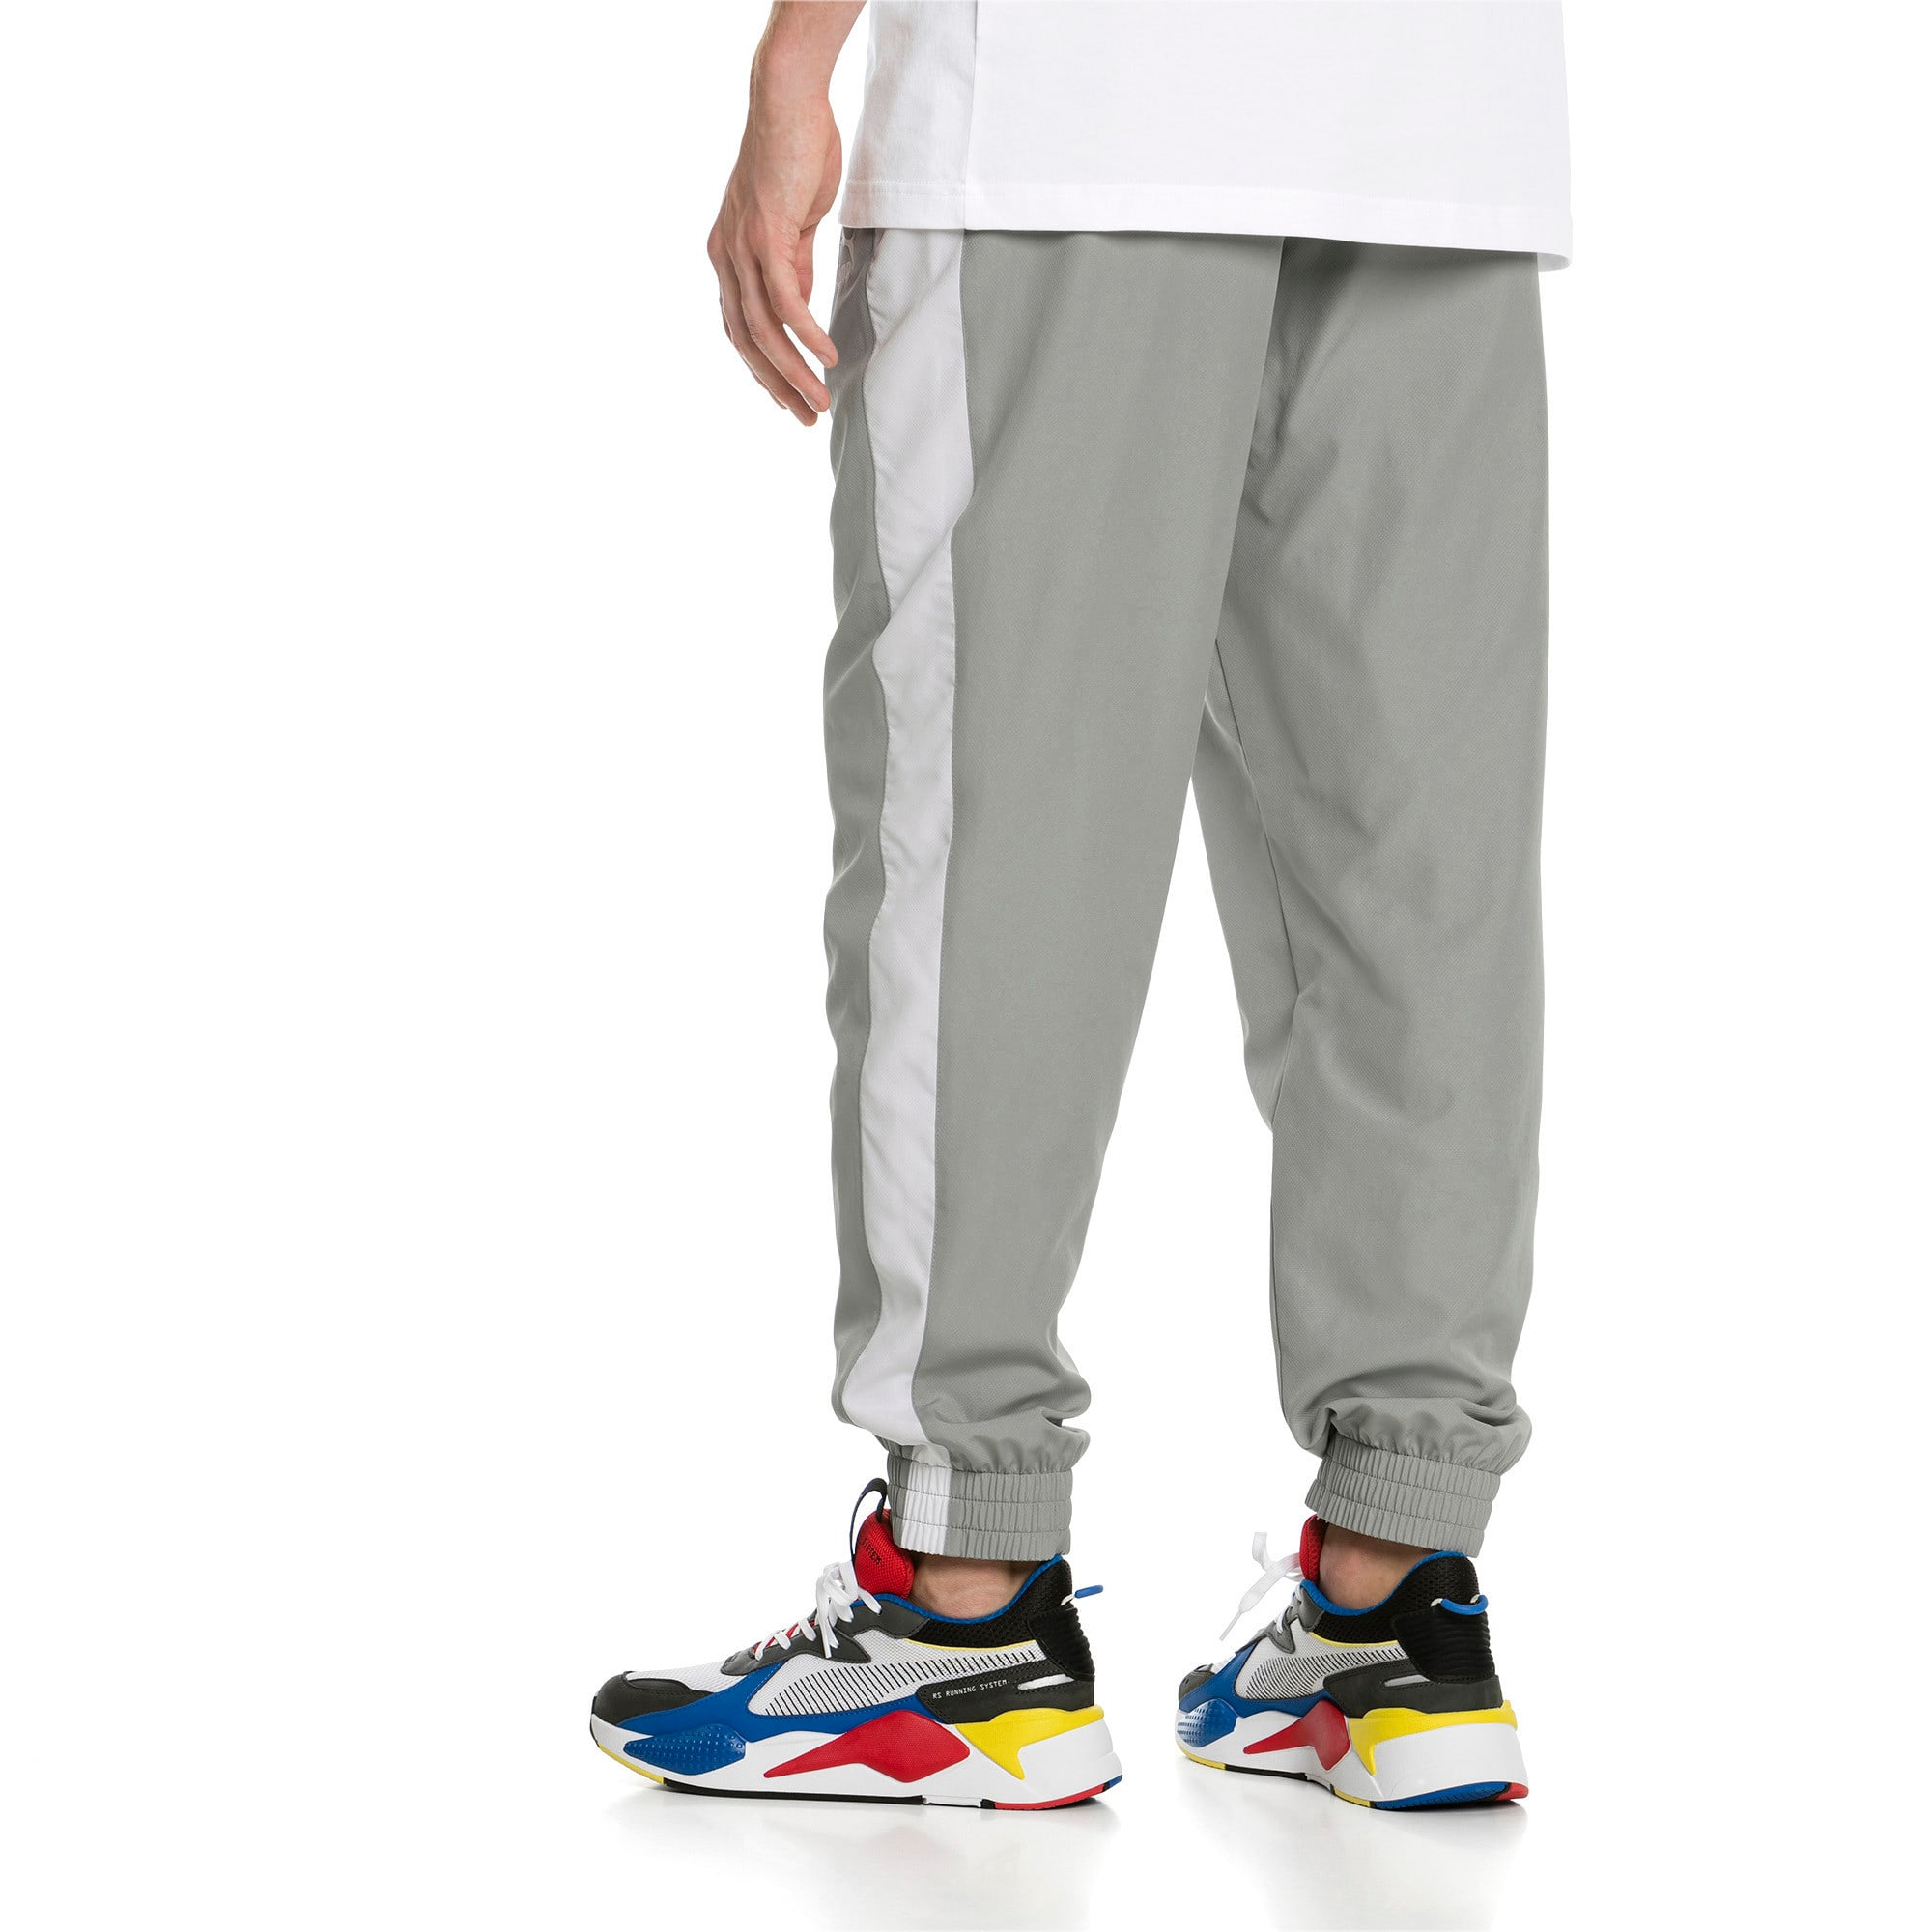 Thumbnail 3 of Iconic T7 Woven Men's Sweatpants, Limestone, medium-IND